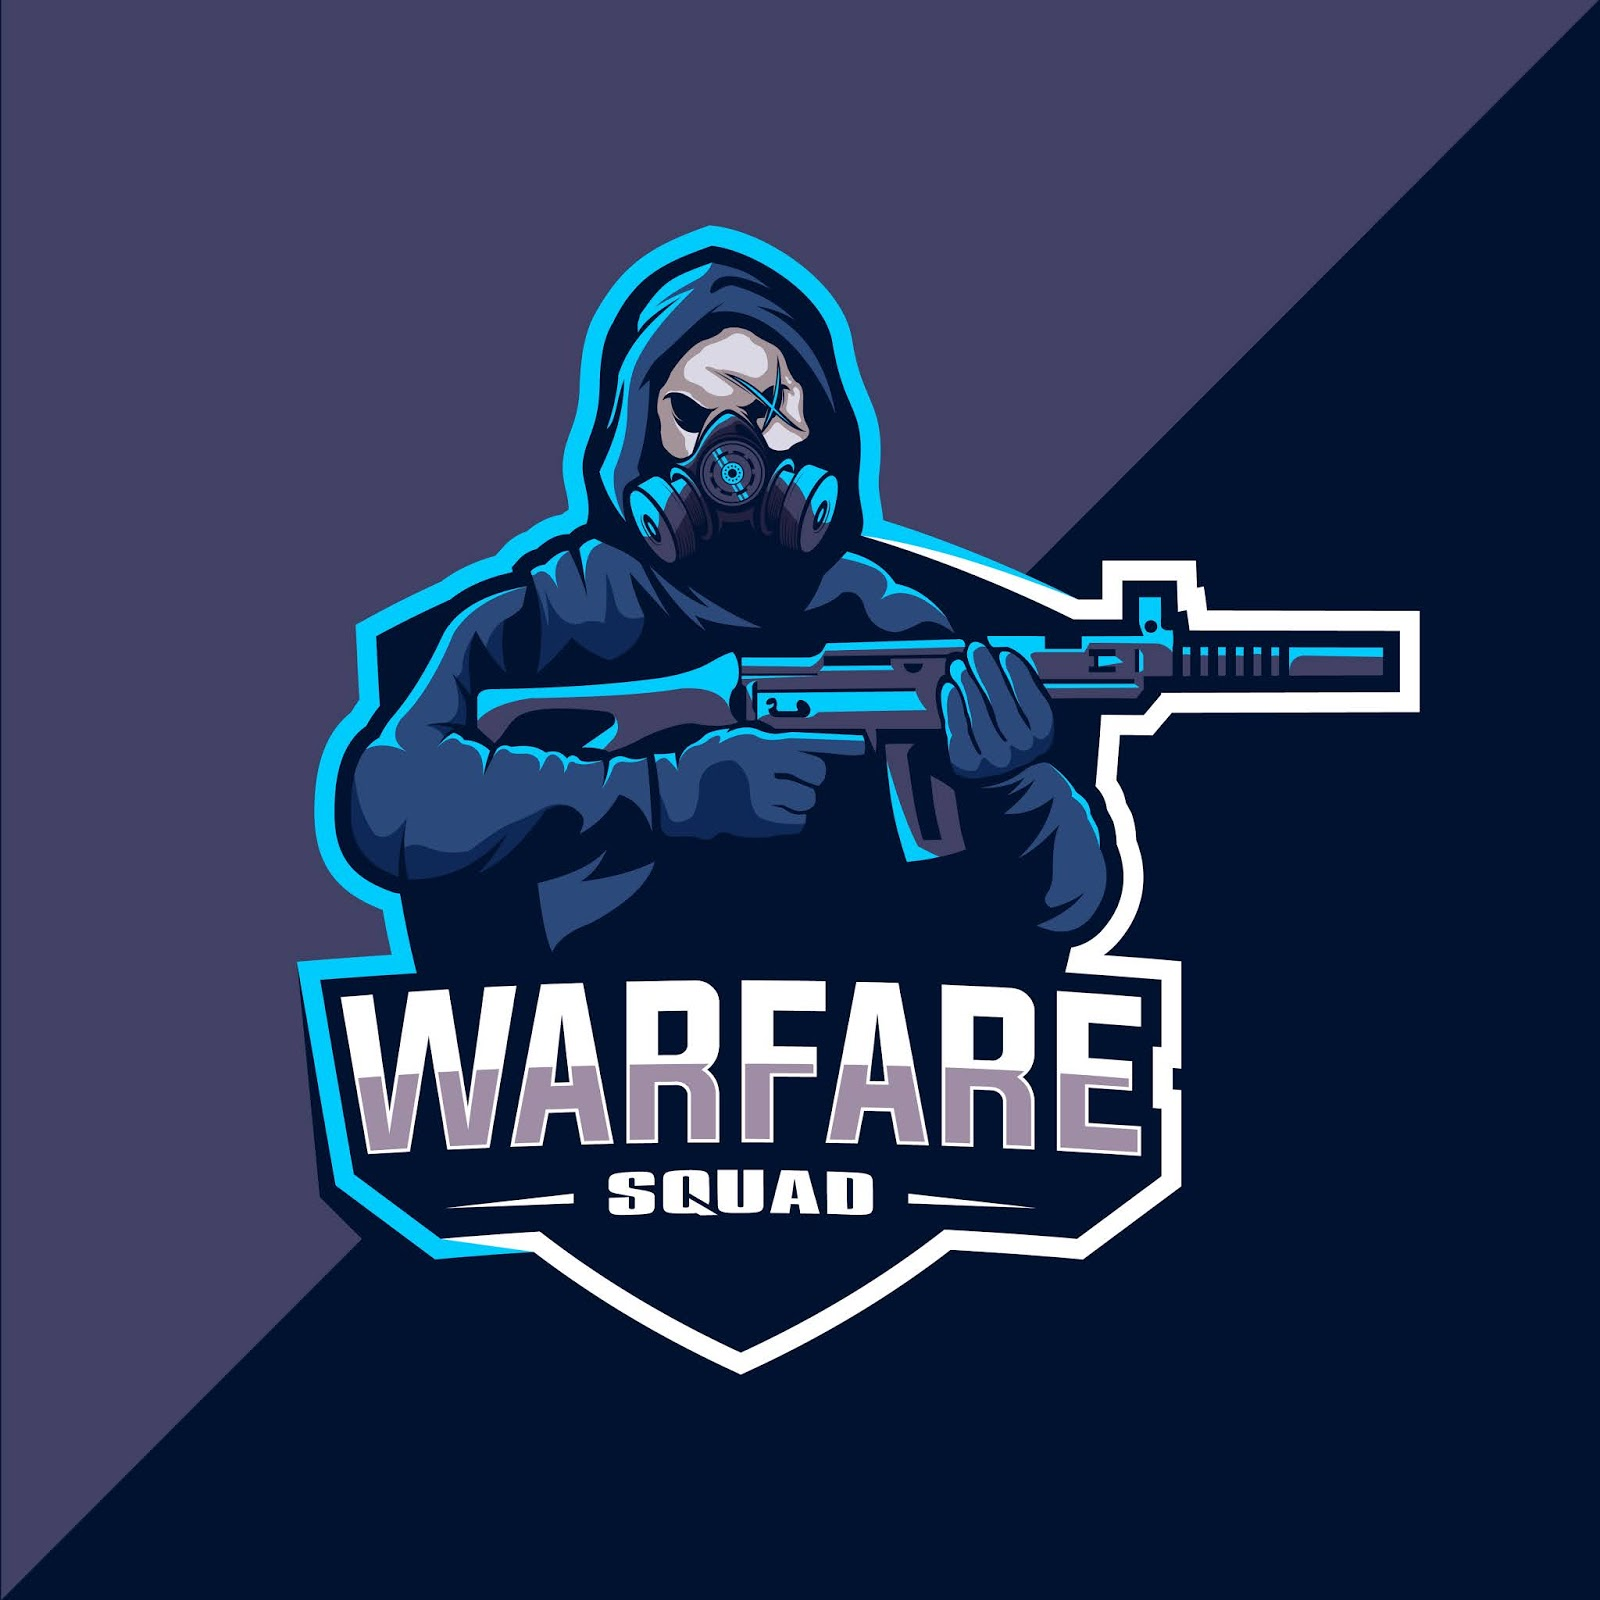 Skull Squad With Gun Mascot Esport Logo Free Download Vector CDR, AI, EPS and PNG Formats